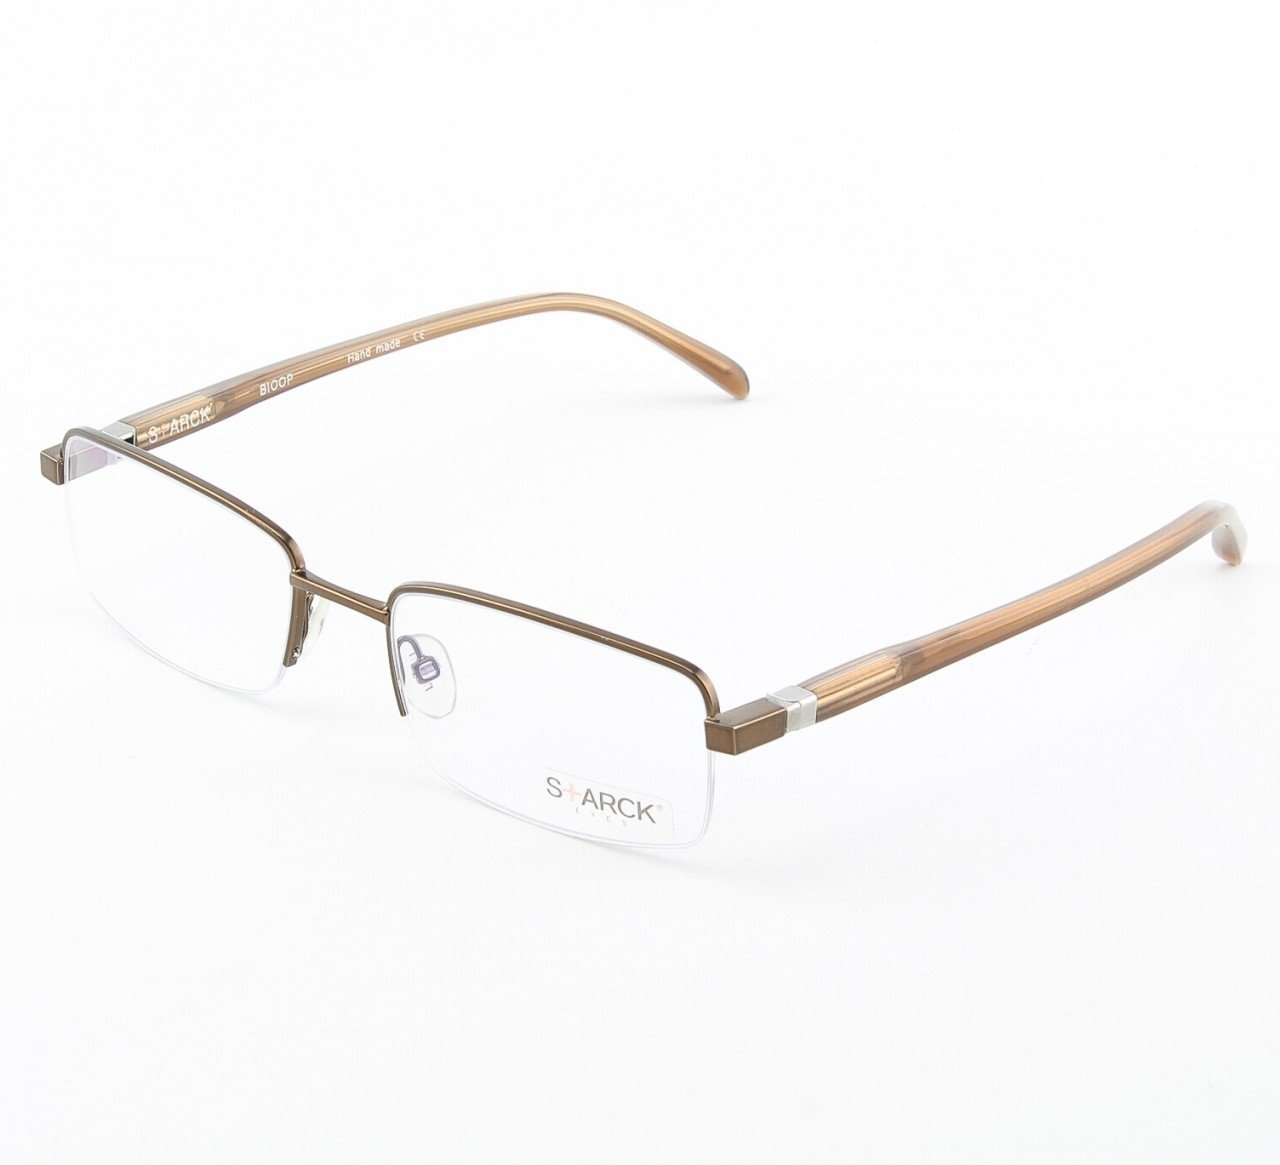 Starck Eyeglasses P0621 Col. 12 Hazel with Clear Lenses